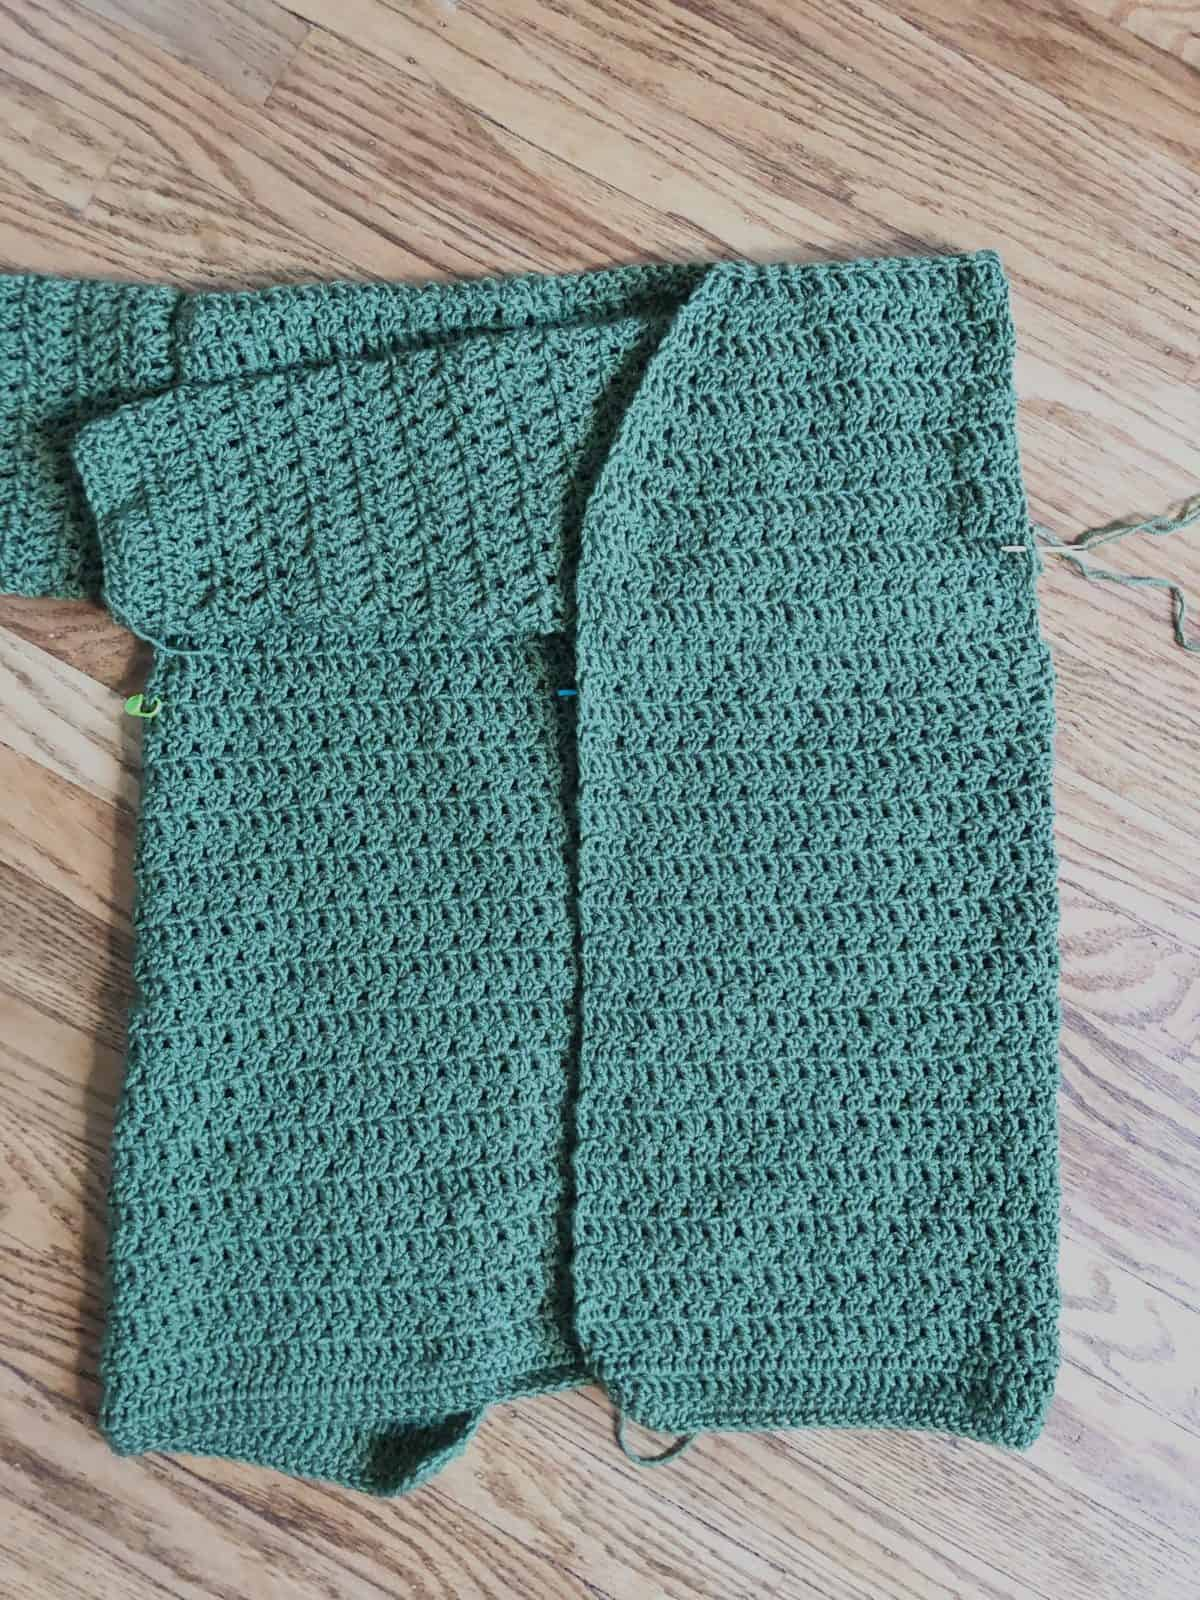 Cardigan wrong side out with sleeve right side out.